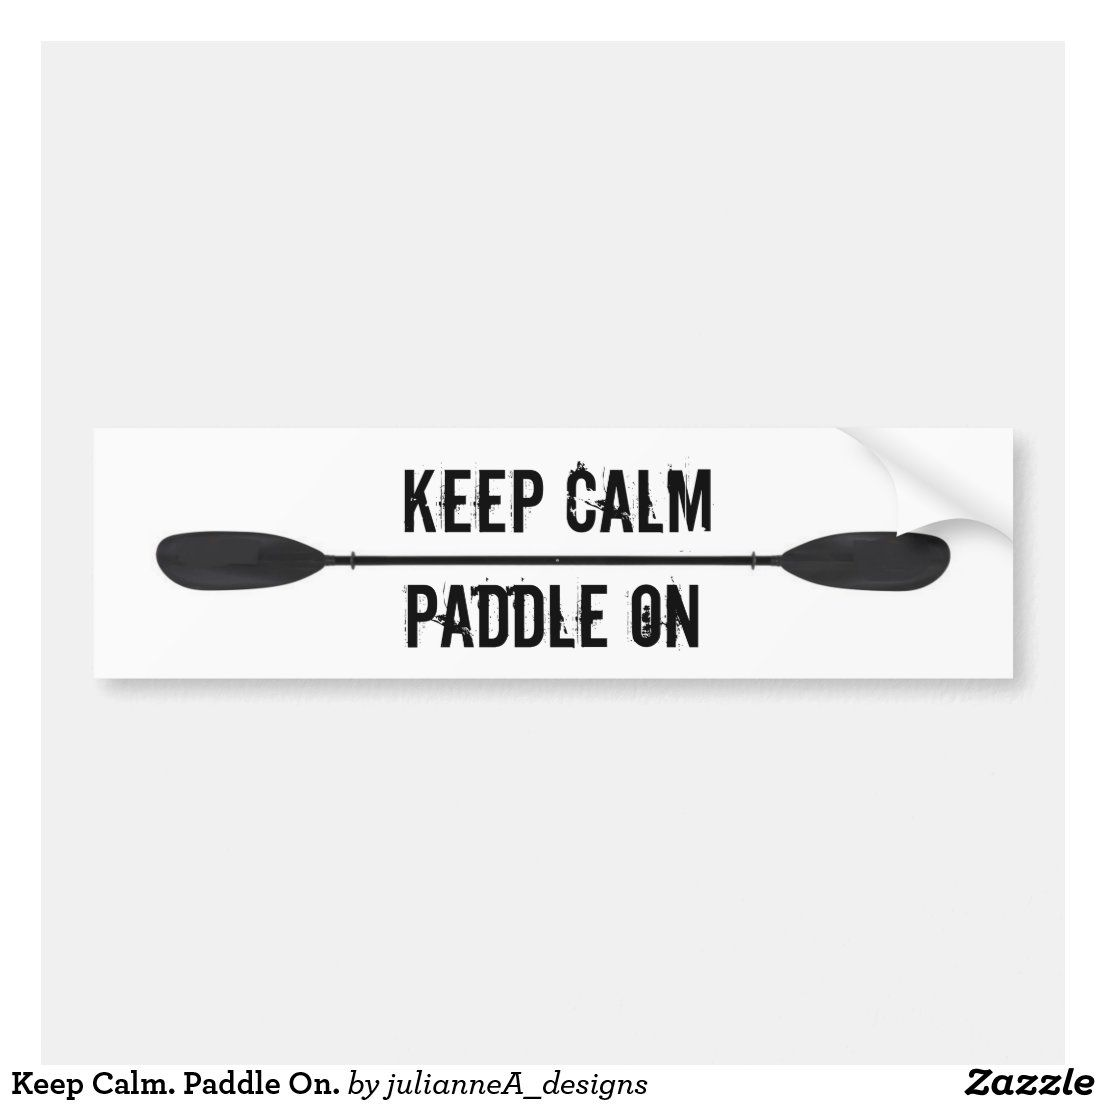 Keep Calm Paddle On Bumper Sticker Bumper Stickers Bumpers Stickers [ 1106 x 1106 Pixel ]